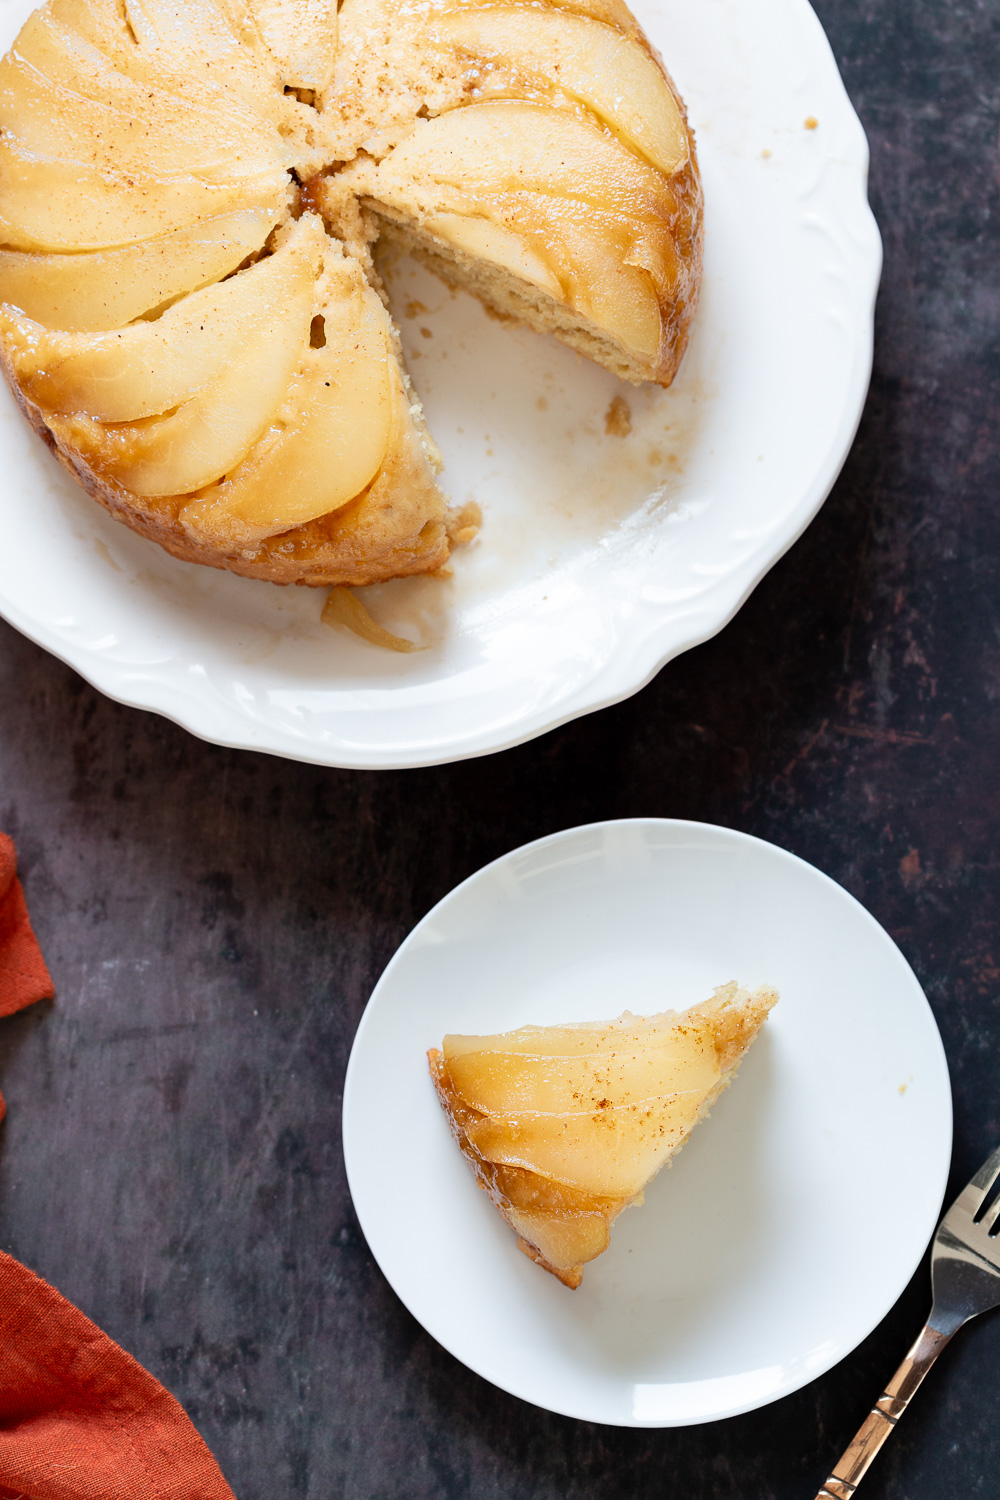 Vegan Pear Upside Down Cake